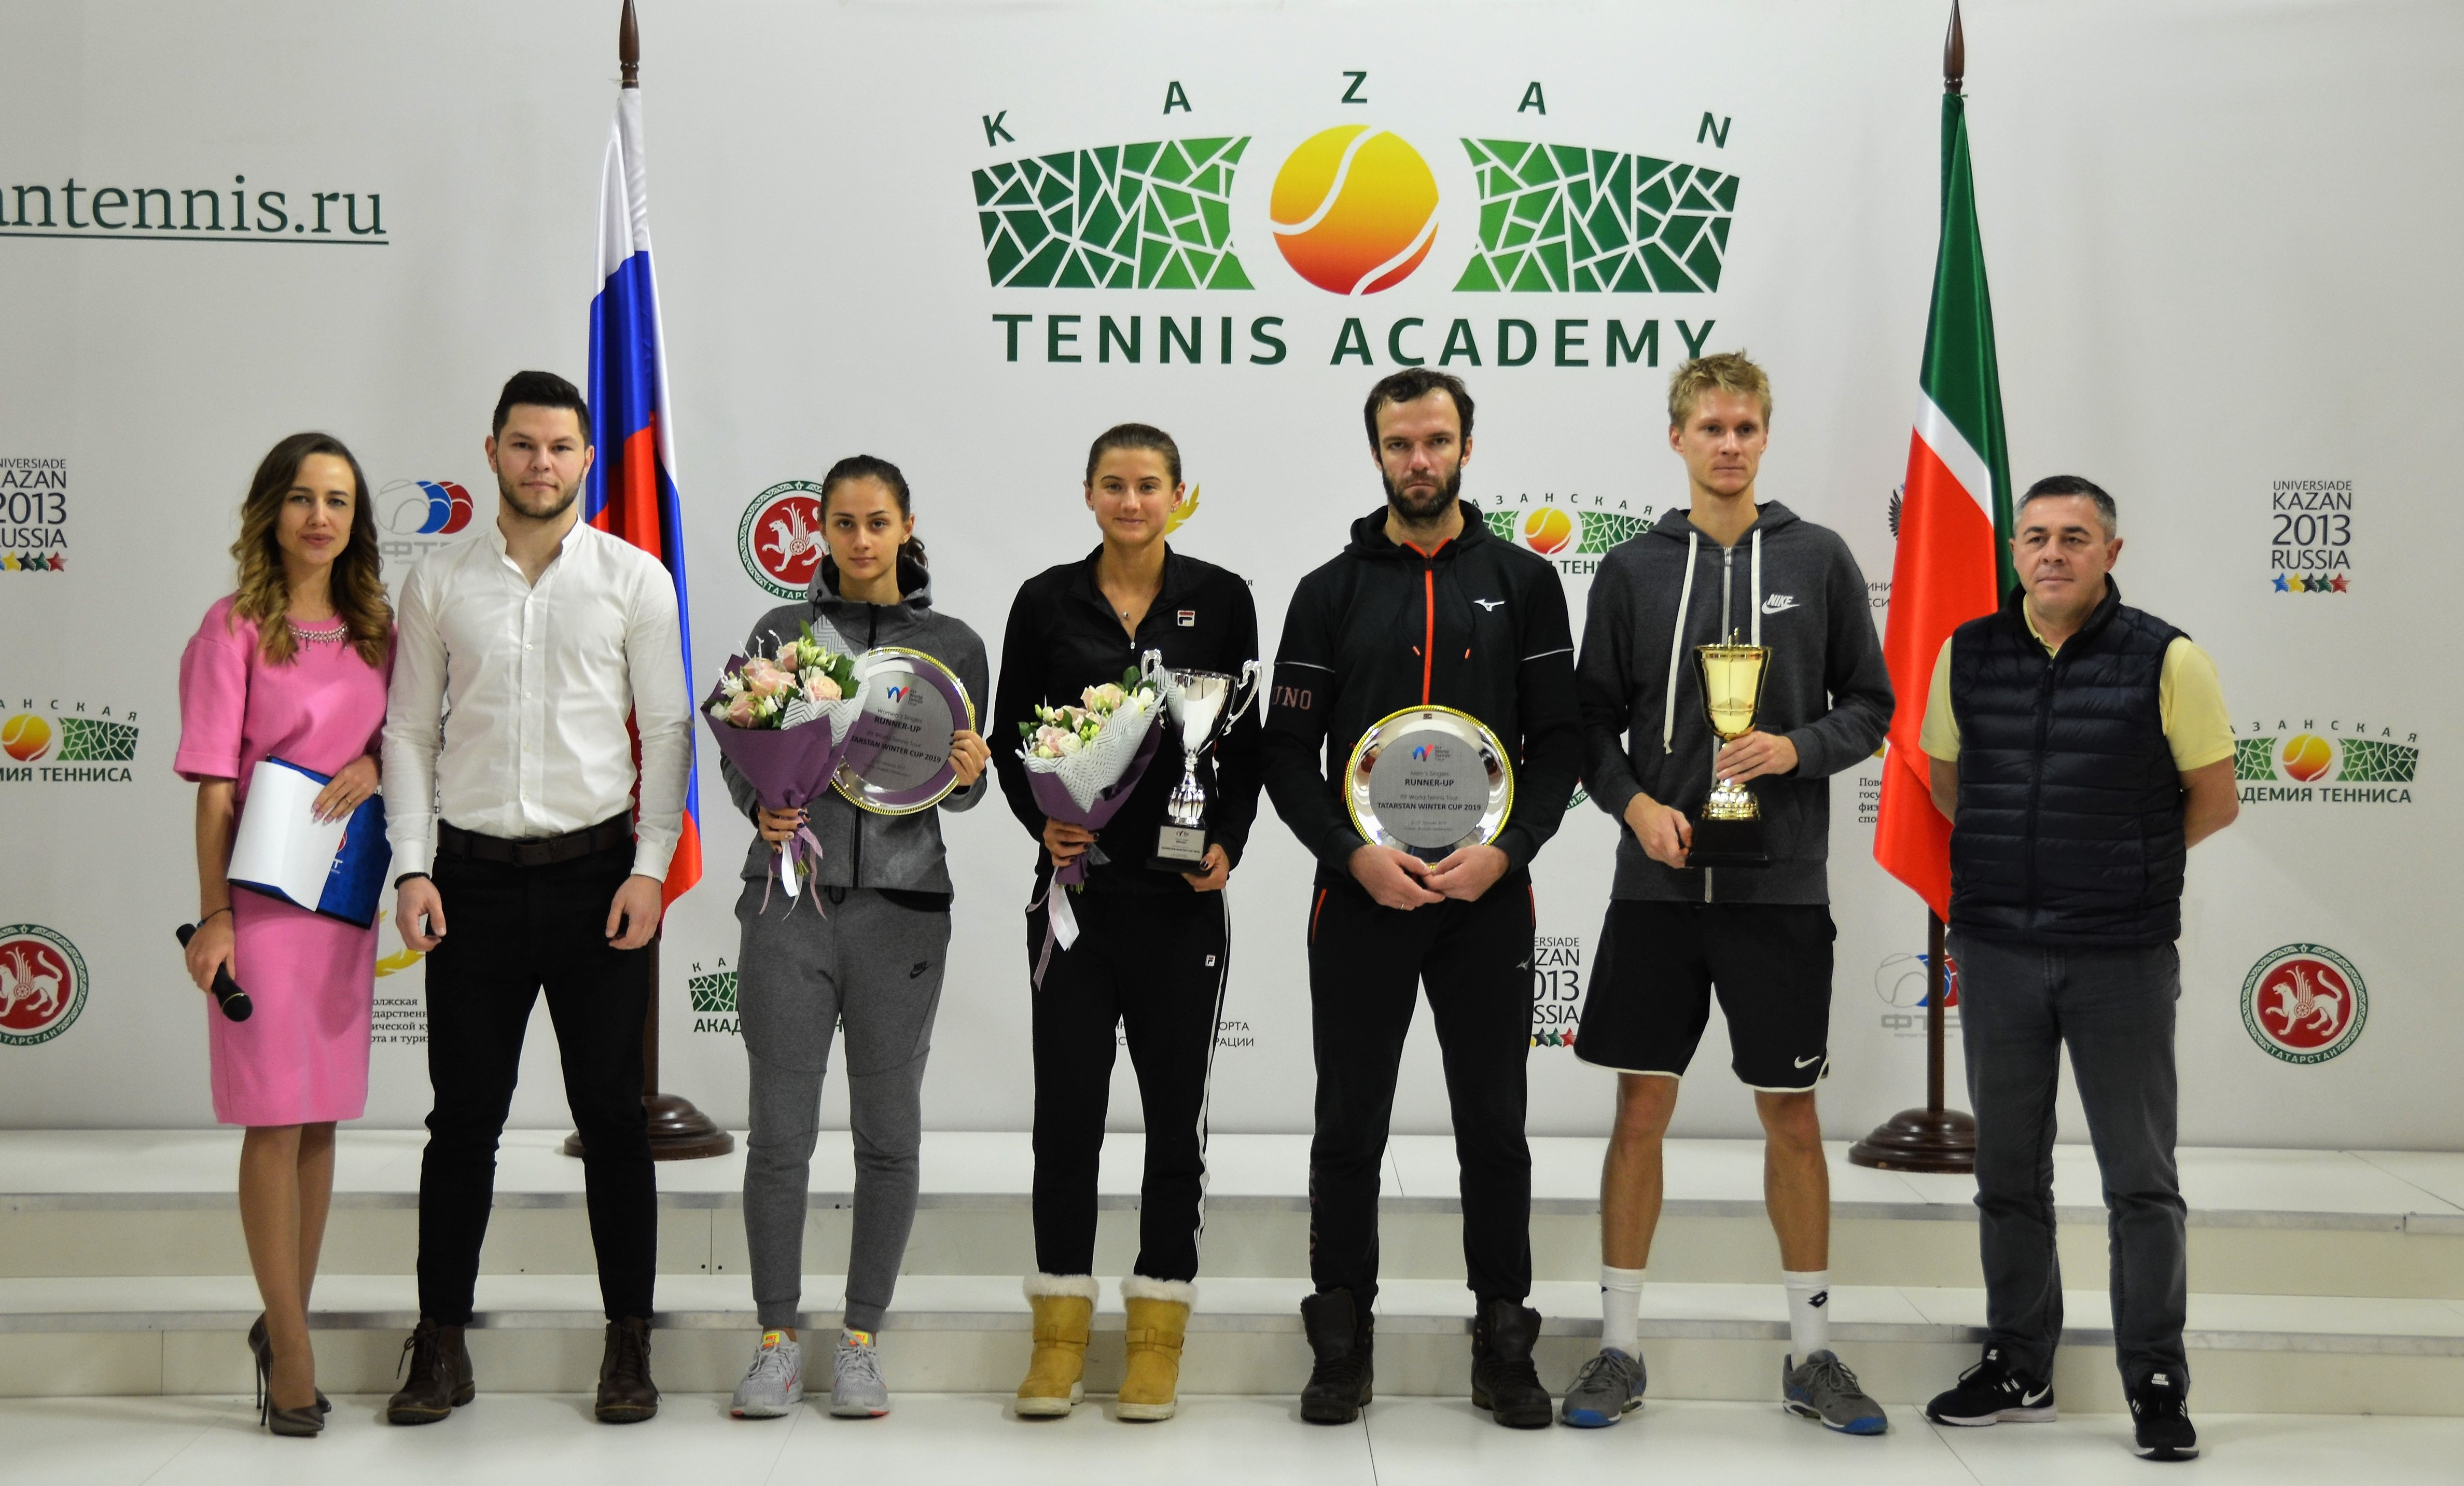 «Золото» ITF World Tennis Tour Tatarstan Winter Cup 25 000$ 2019 у России и Узбекистана!